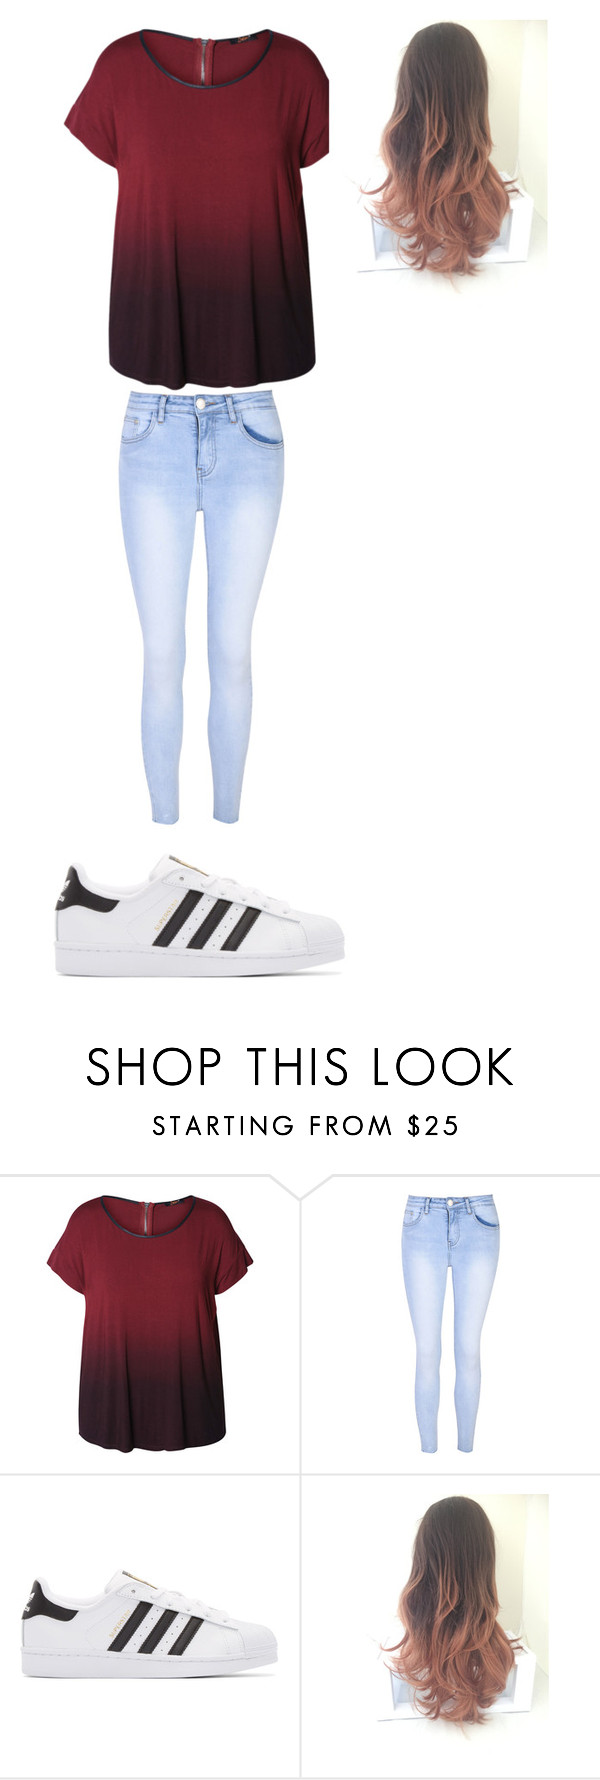 """Untitled #14"" by beutykat132 on Polyvore featuring Dex, Glamorous, adidas Originals and plus size clothing"